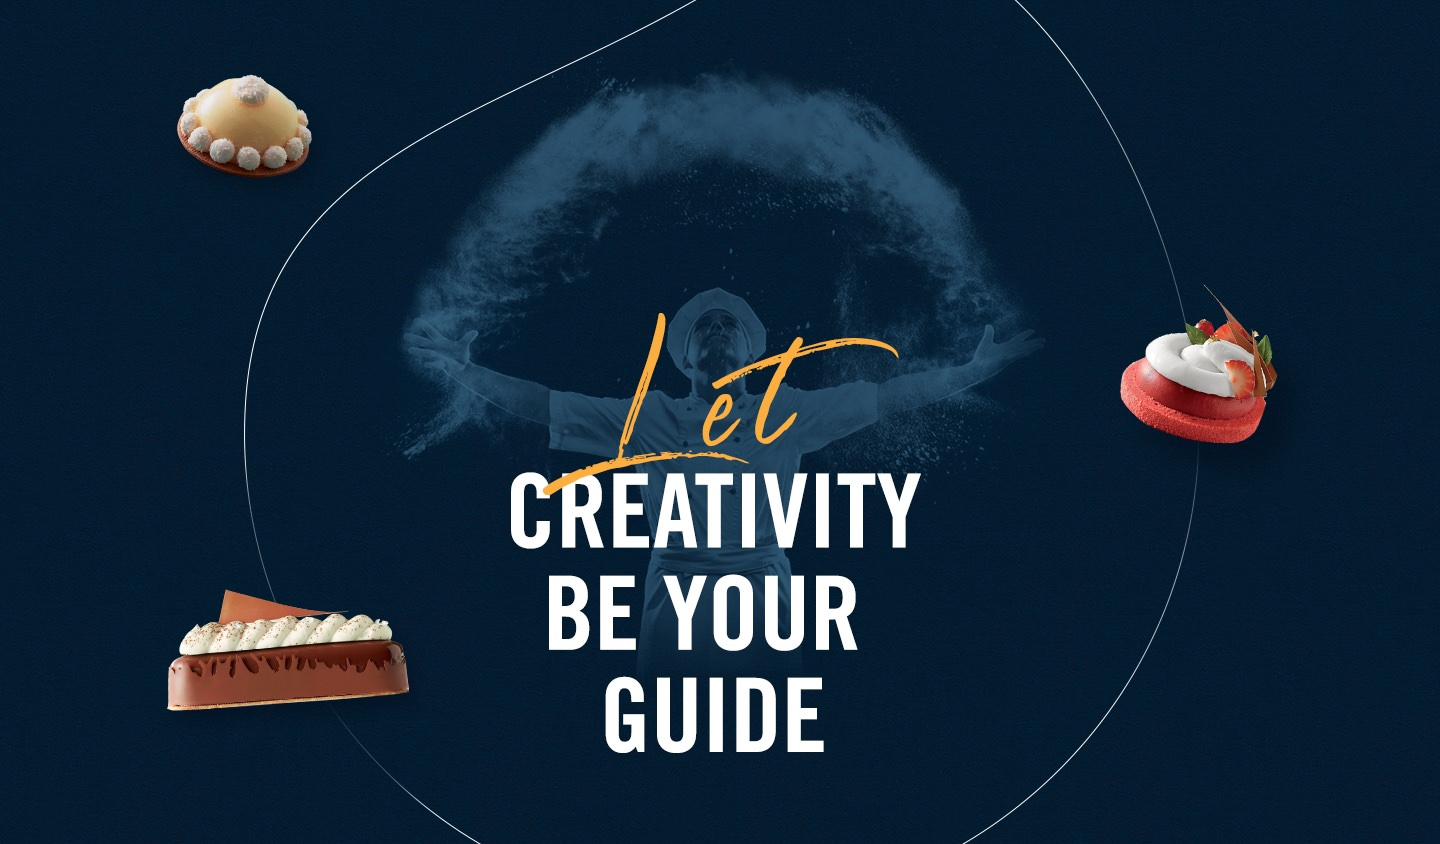 let creativity be your guide